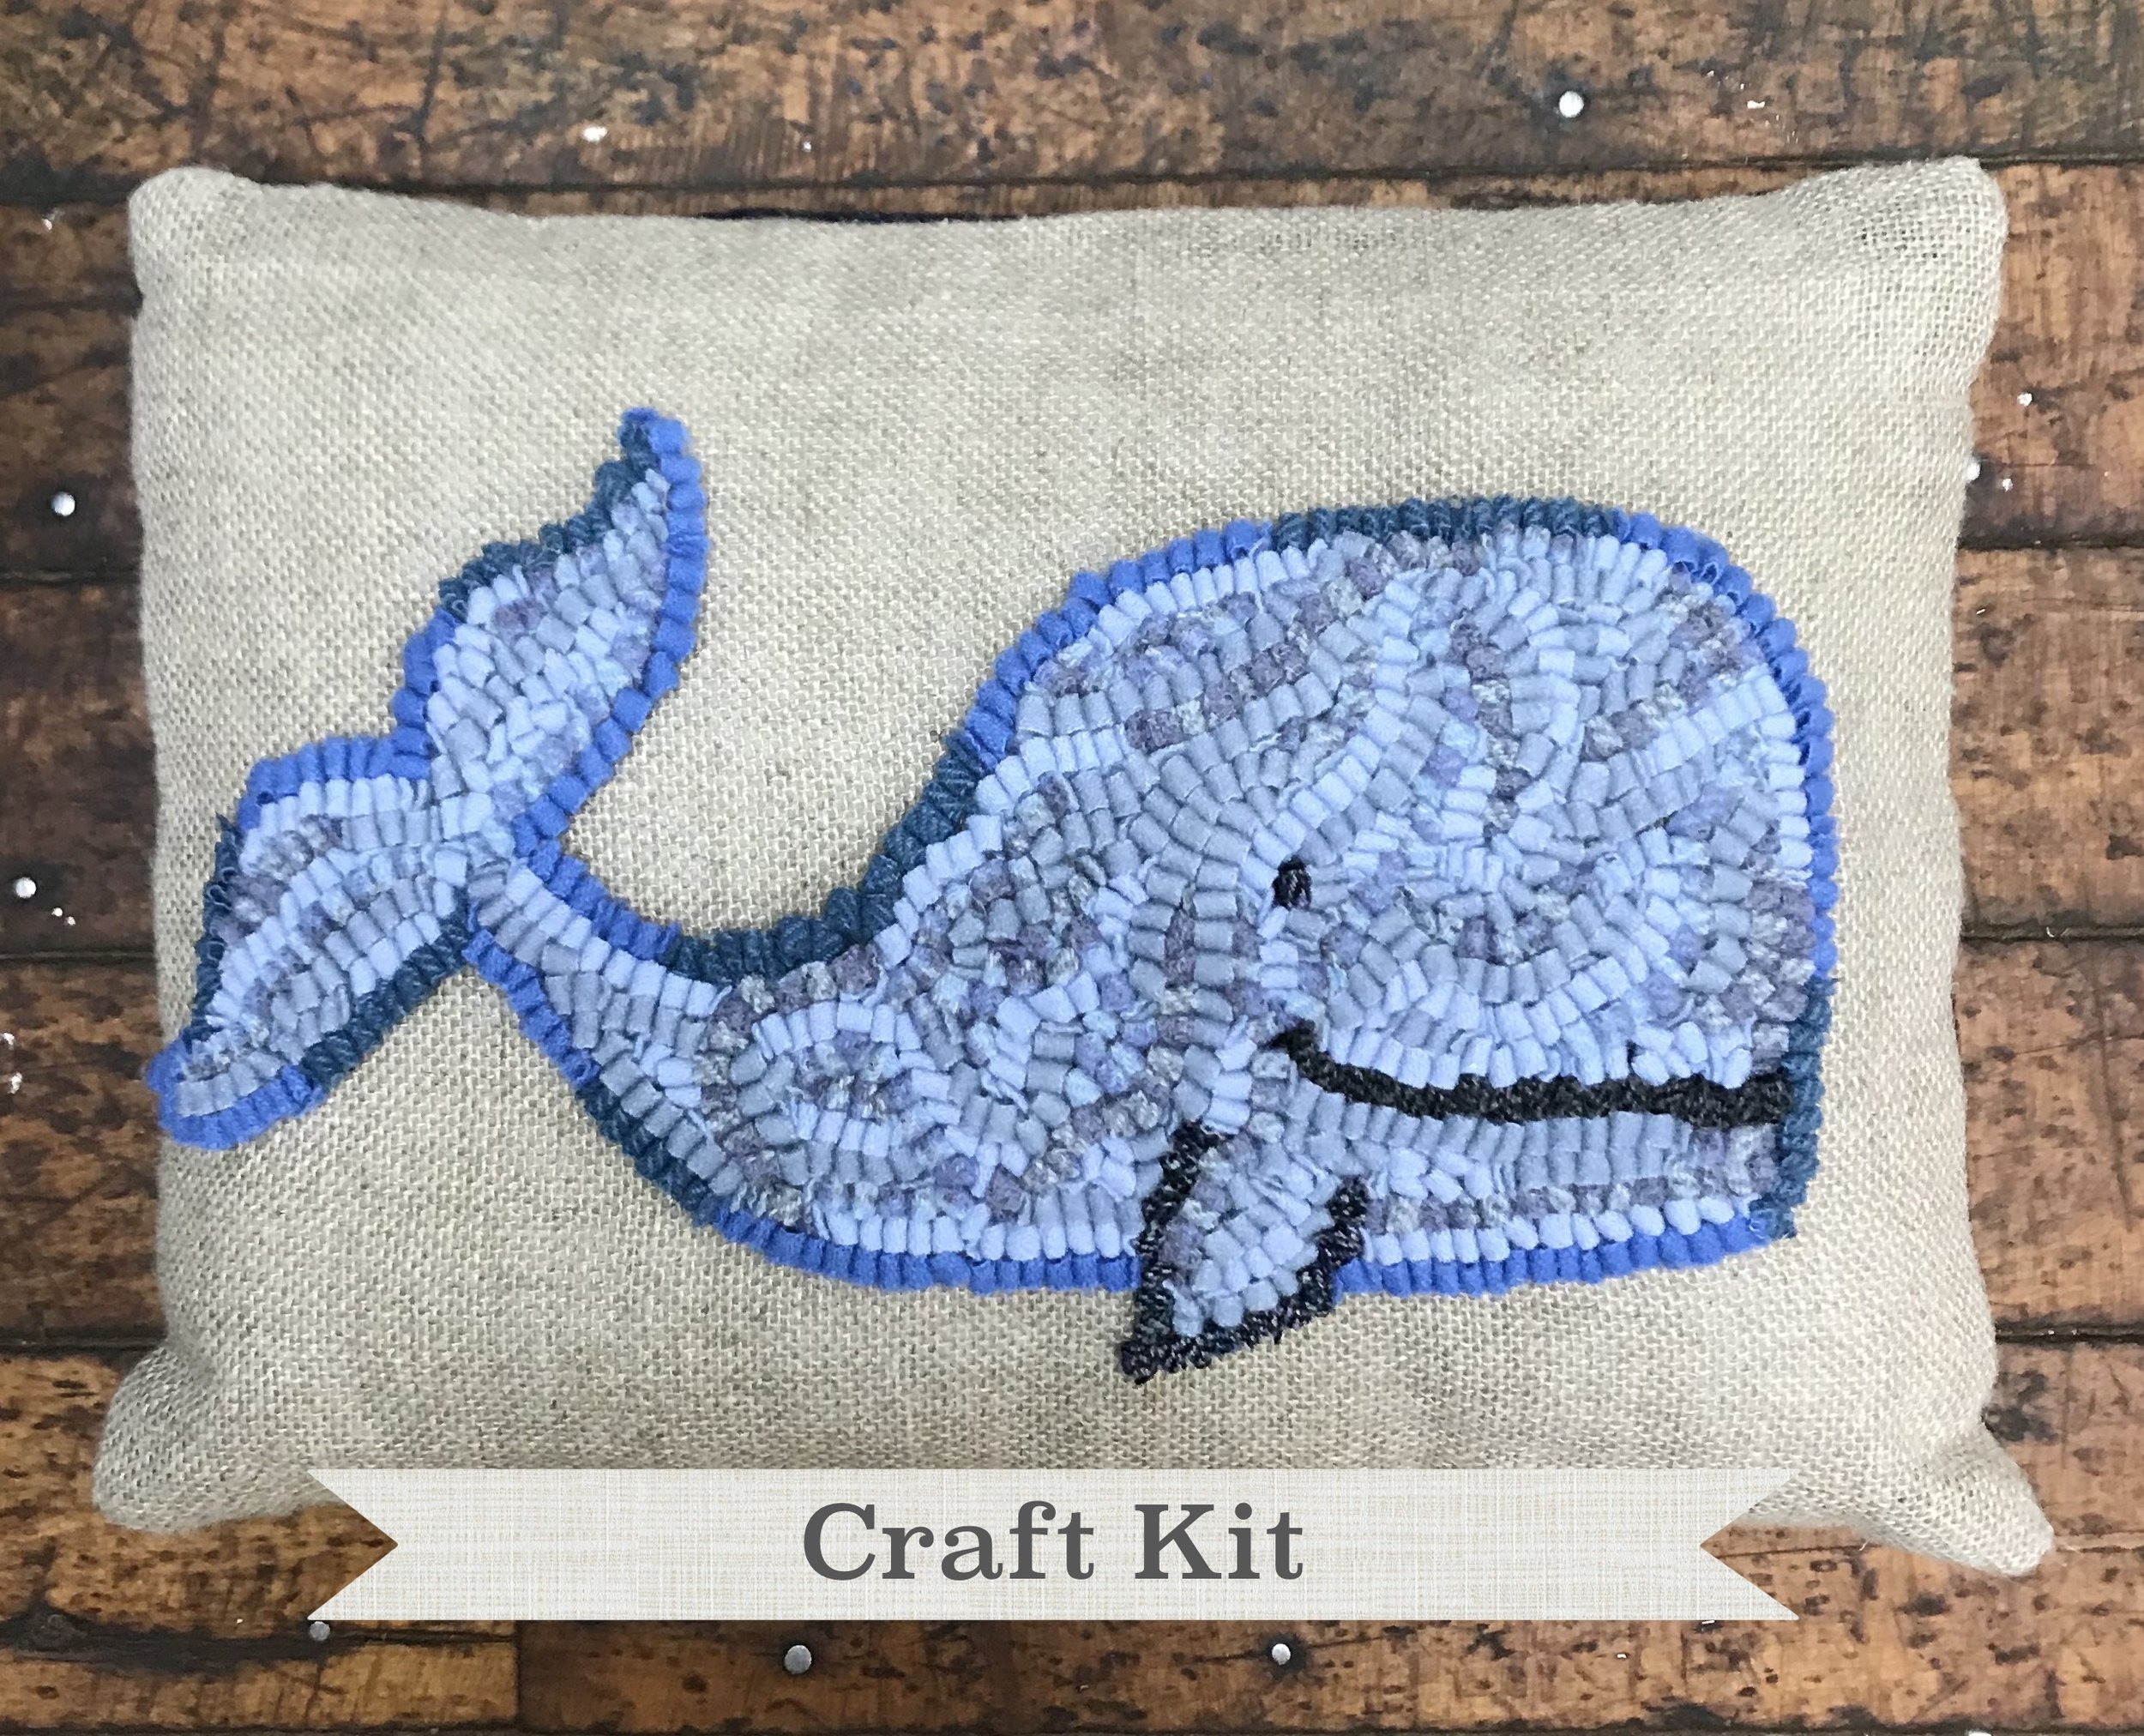 diy rug hooking pillow kit smiling whale complete rug hooking kit make your own 12 x 16 inch linen pillow free shipping in usa loop by loop